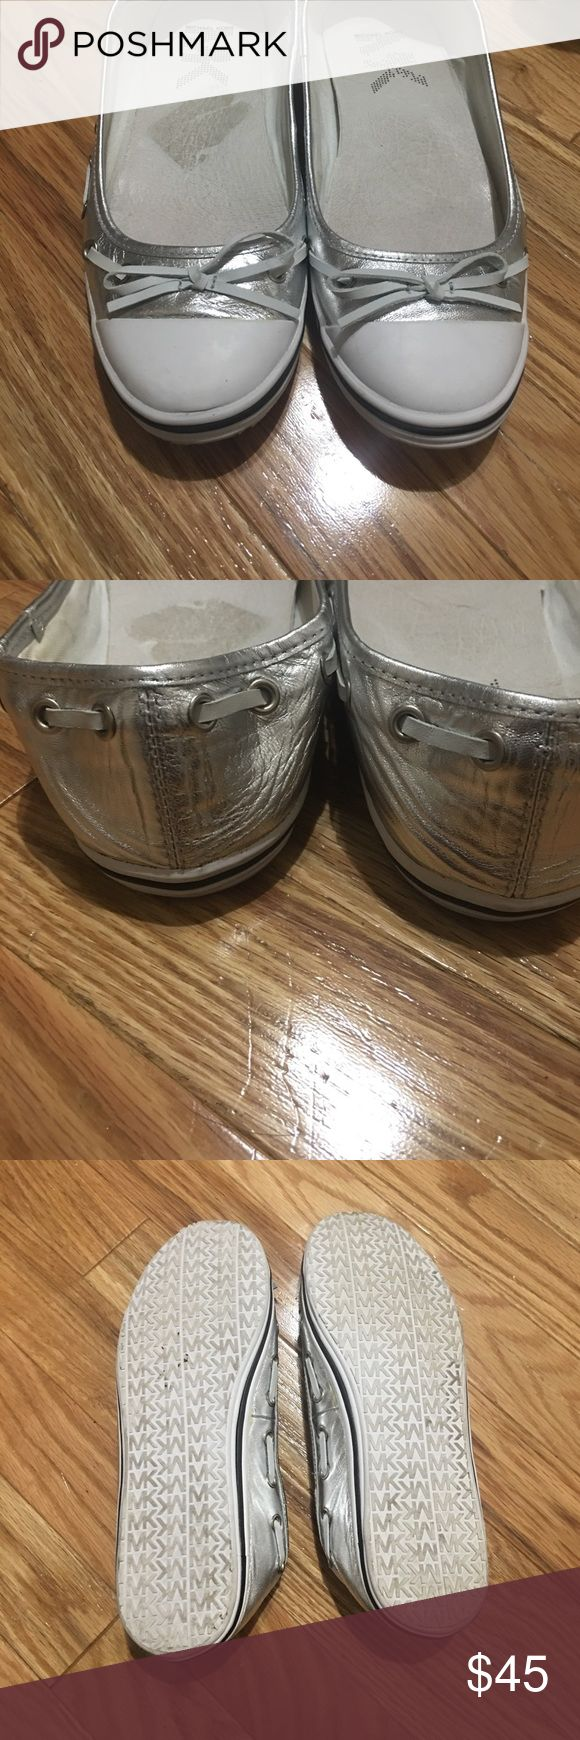 Micheal Kors slip ons Adorable silver and white Micheal Kors deck slip on shoes. White toes with silver body with white leather accent running around top. Cute and light weight perfect for spring/summer!! Michael Kors Shoes Flats & Loafers